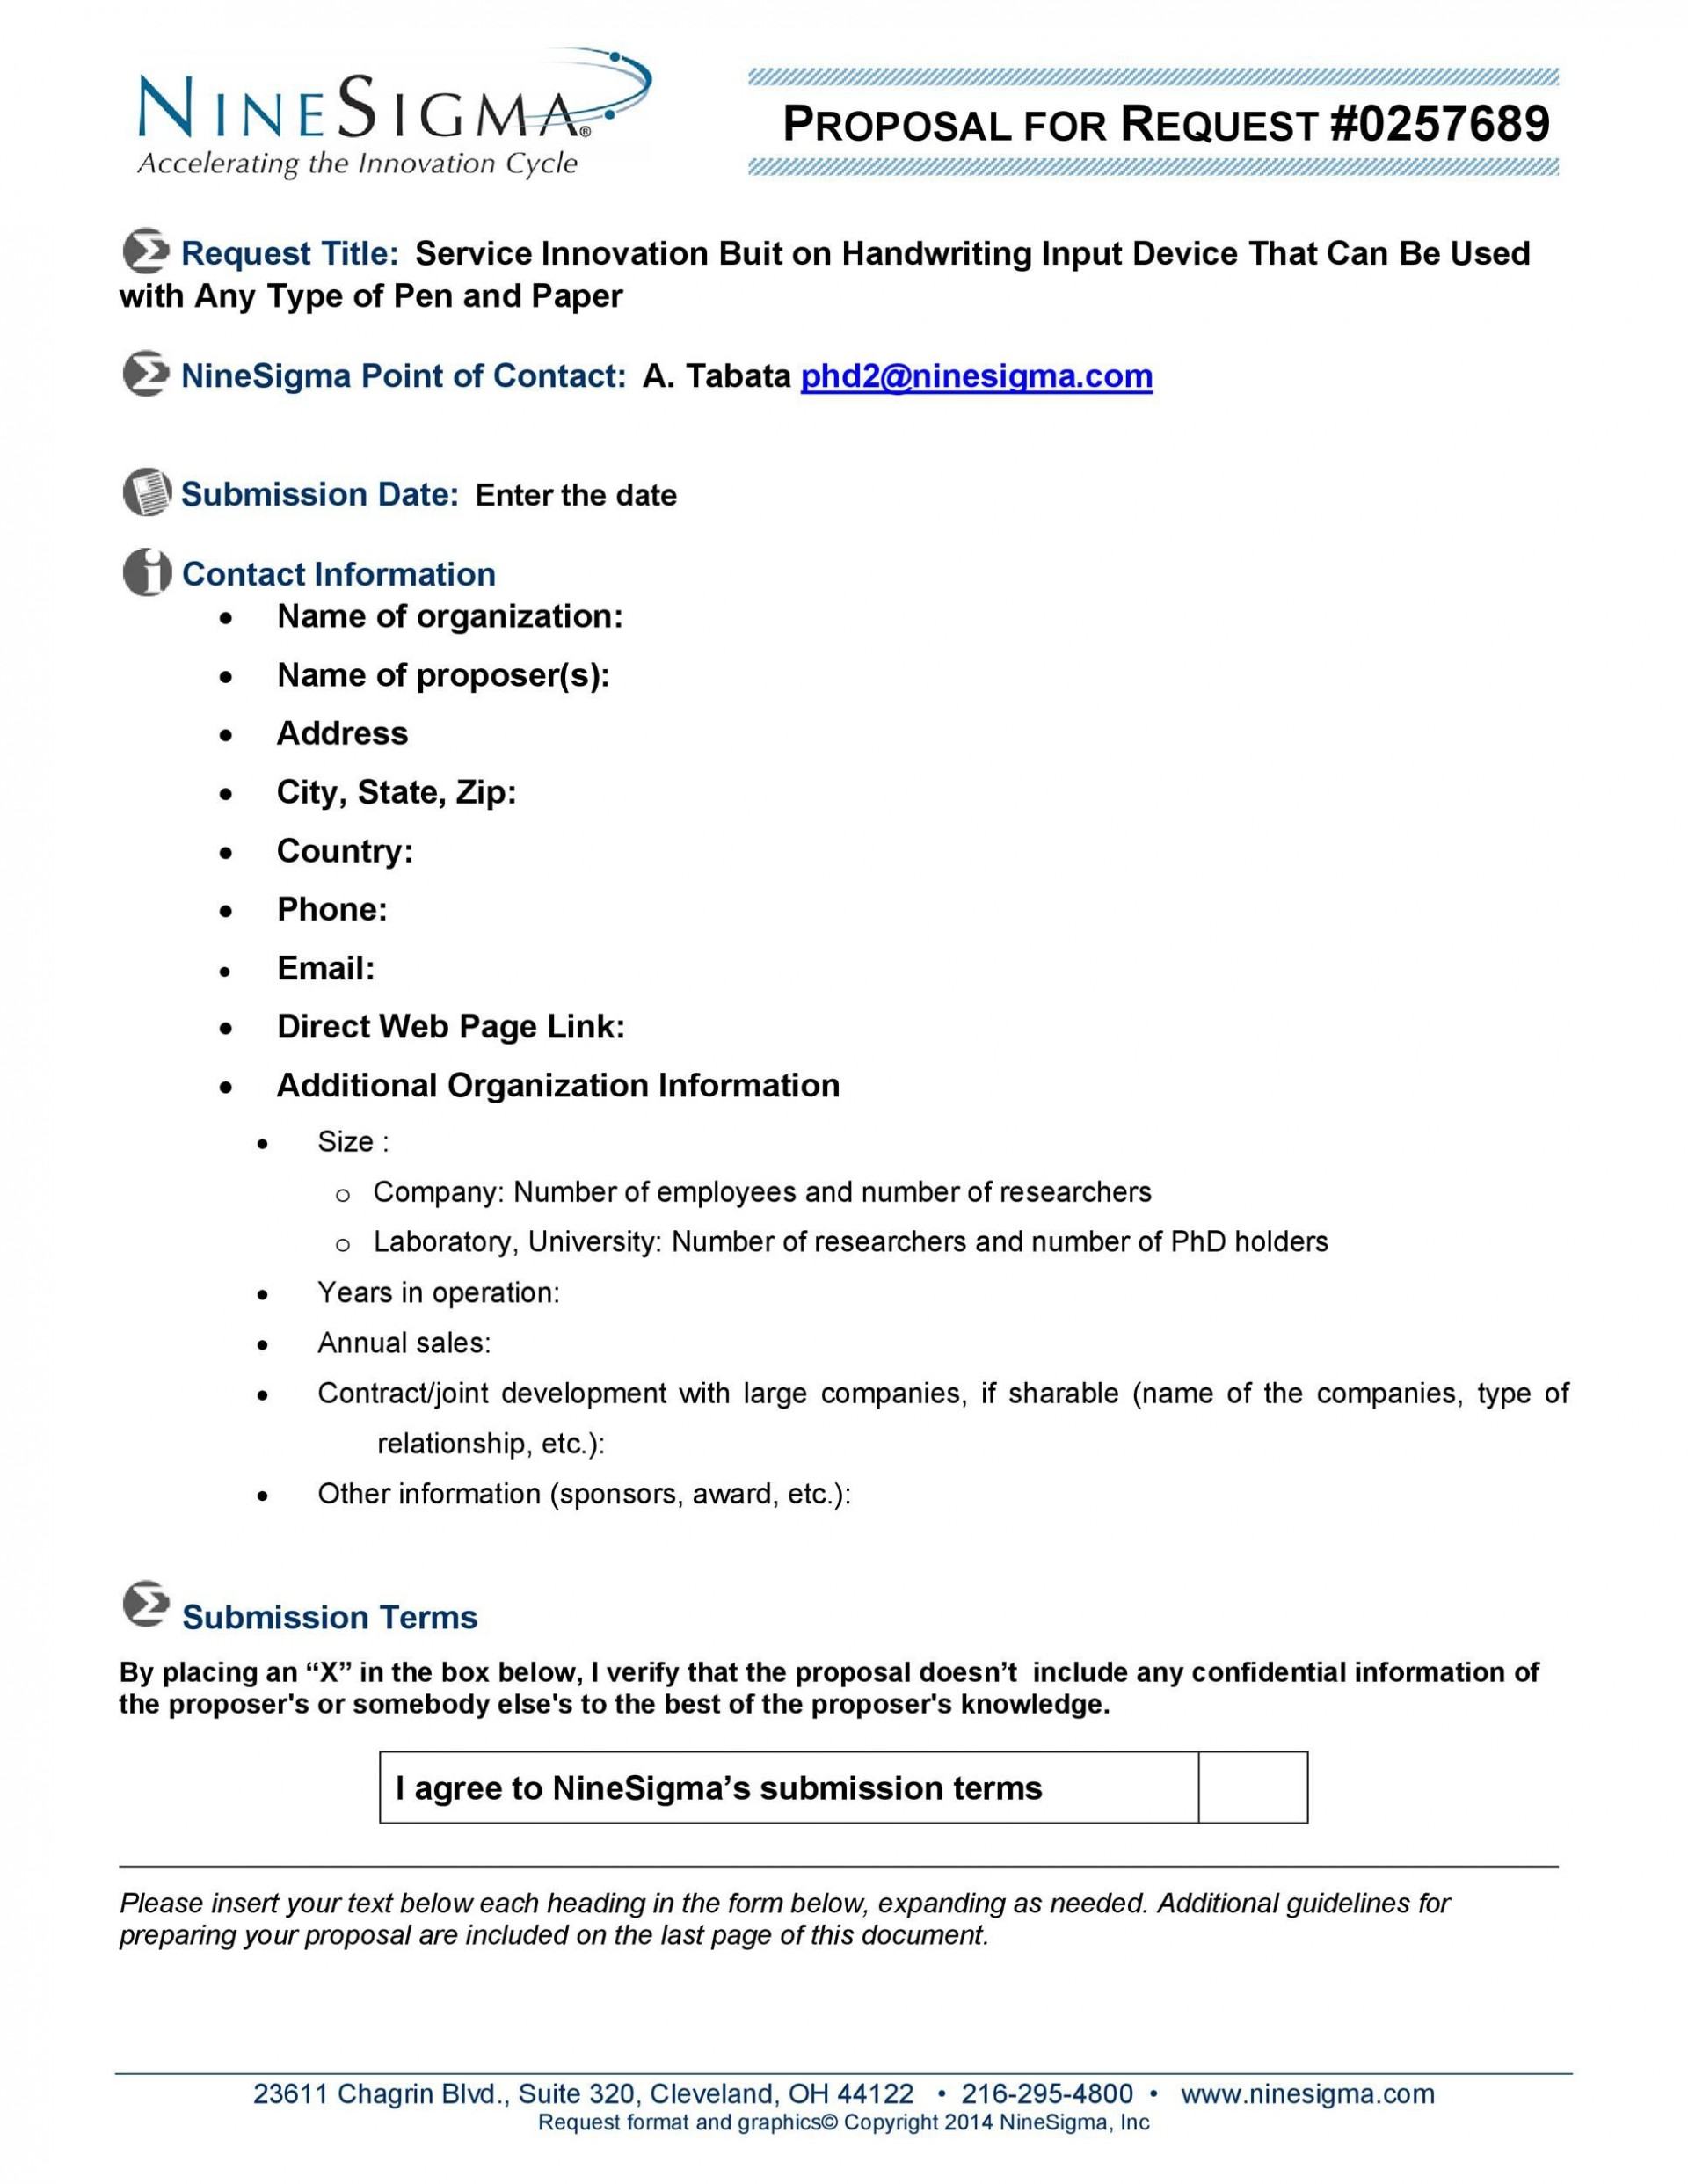 008 Unforgettable Request For Proposal Rfp Template Construction Highest Quality 1920